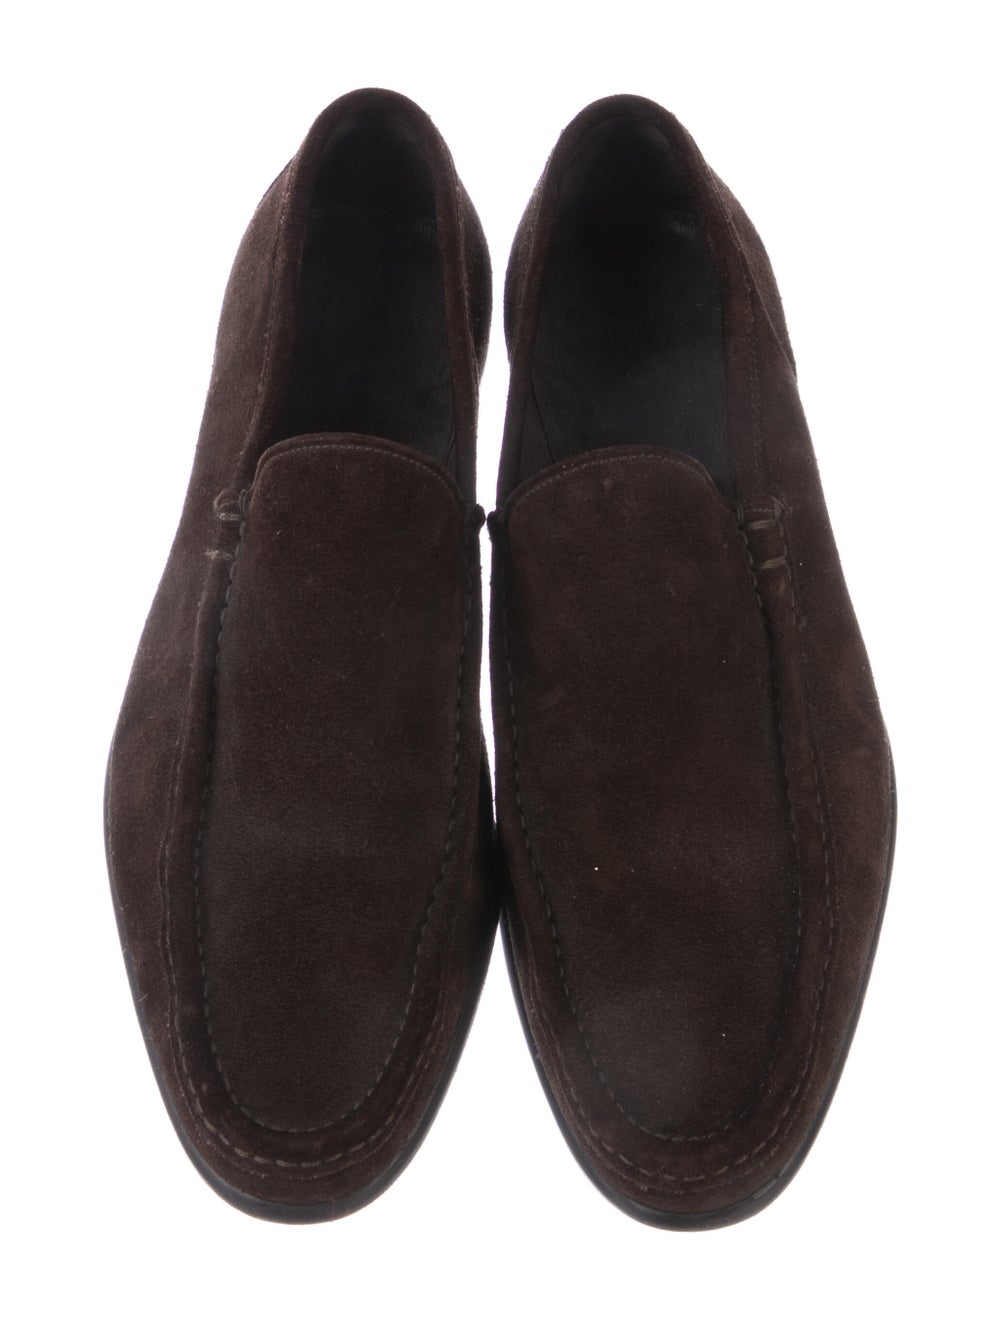 Gucci Suede Dress Loafers Brown - image 3